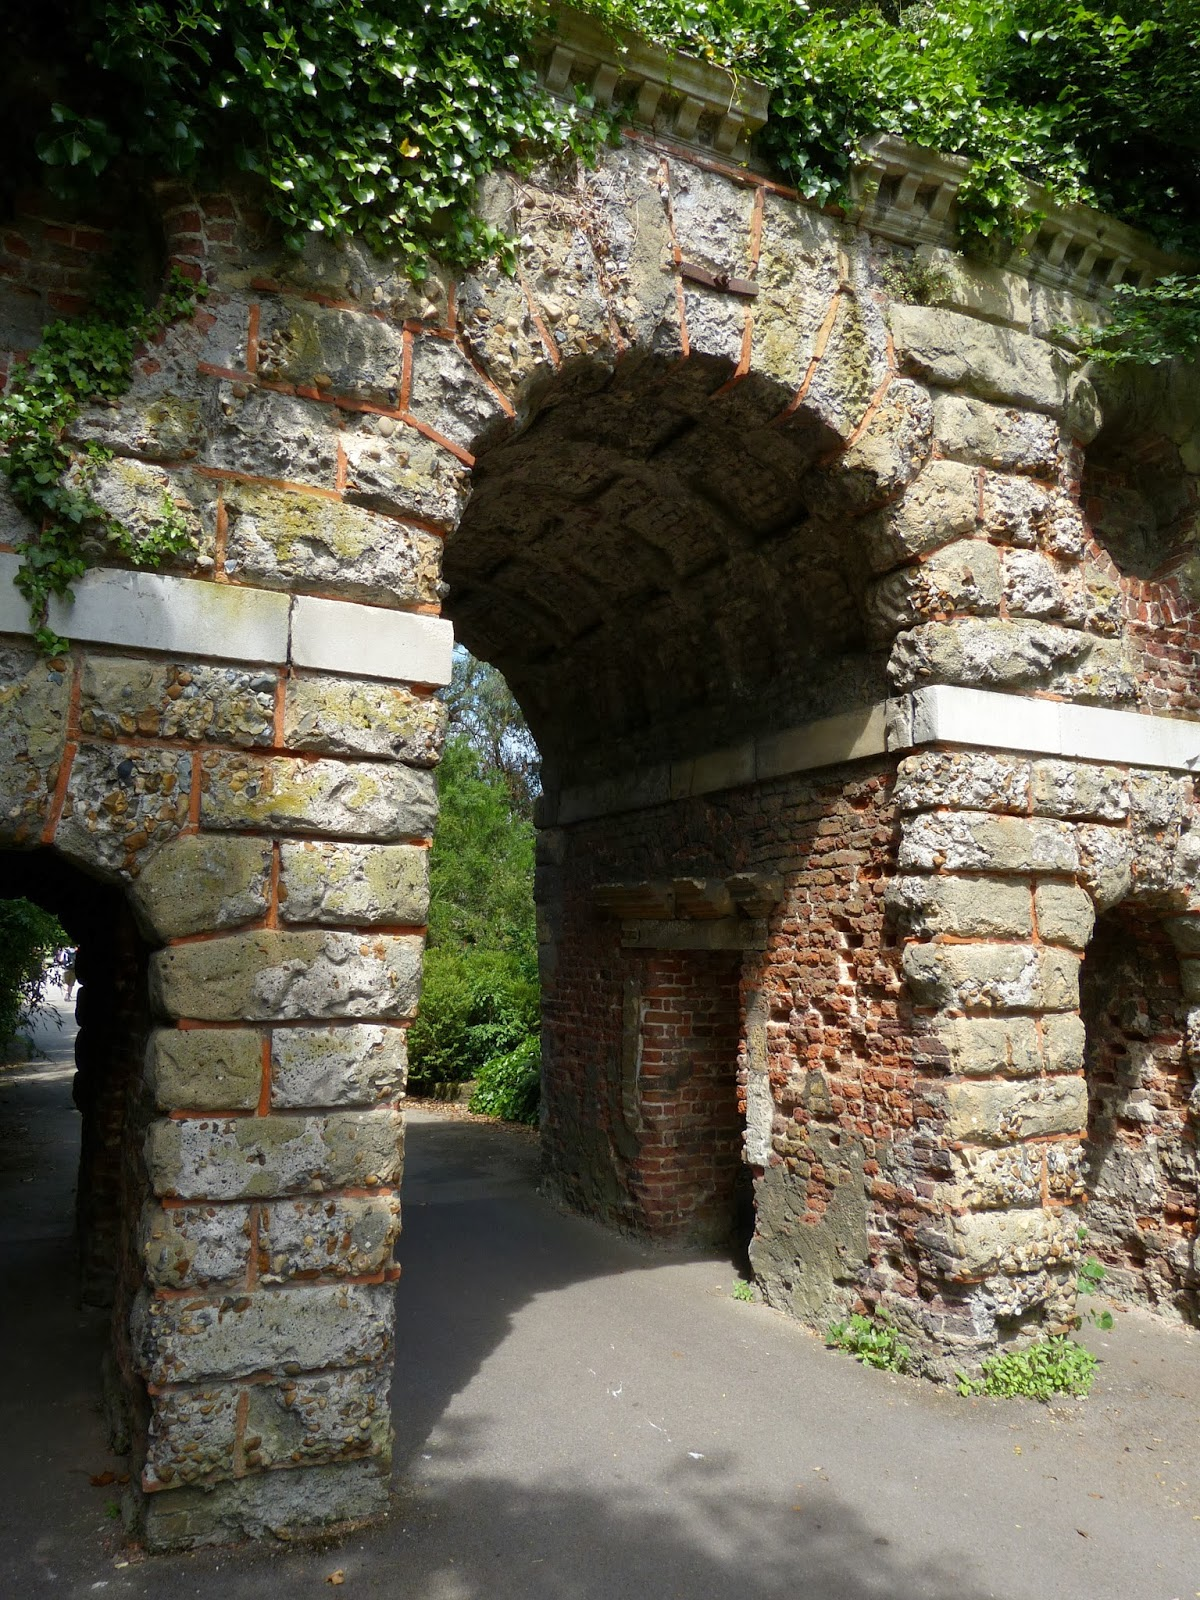 The Ruined Arch, Kew